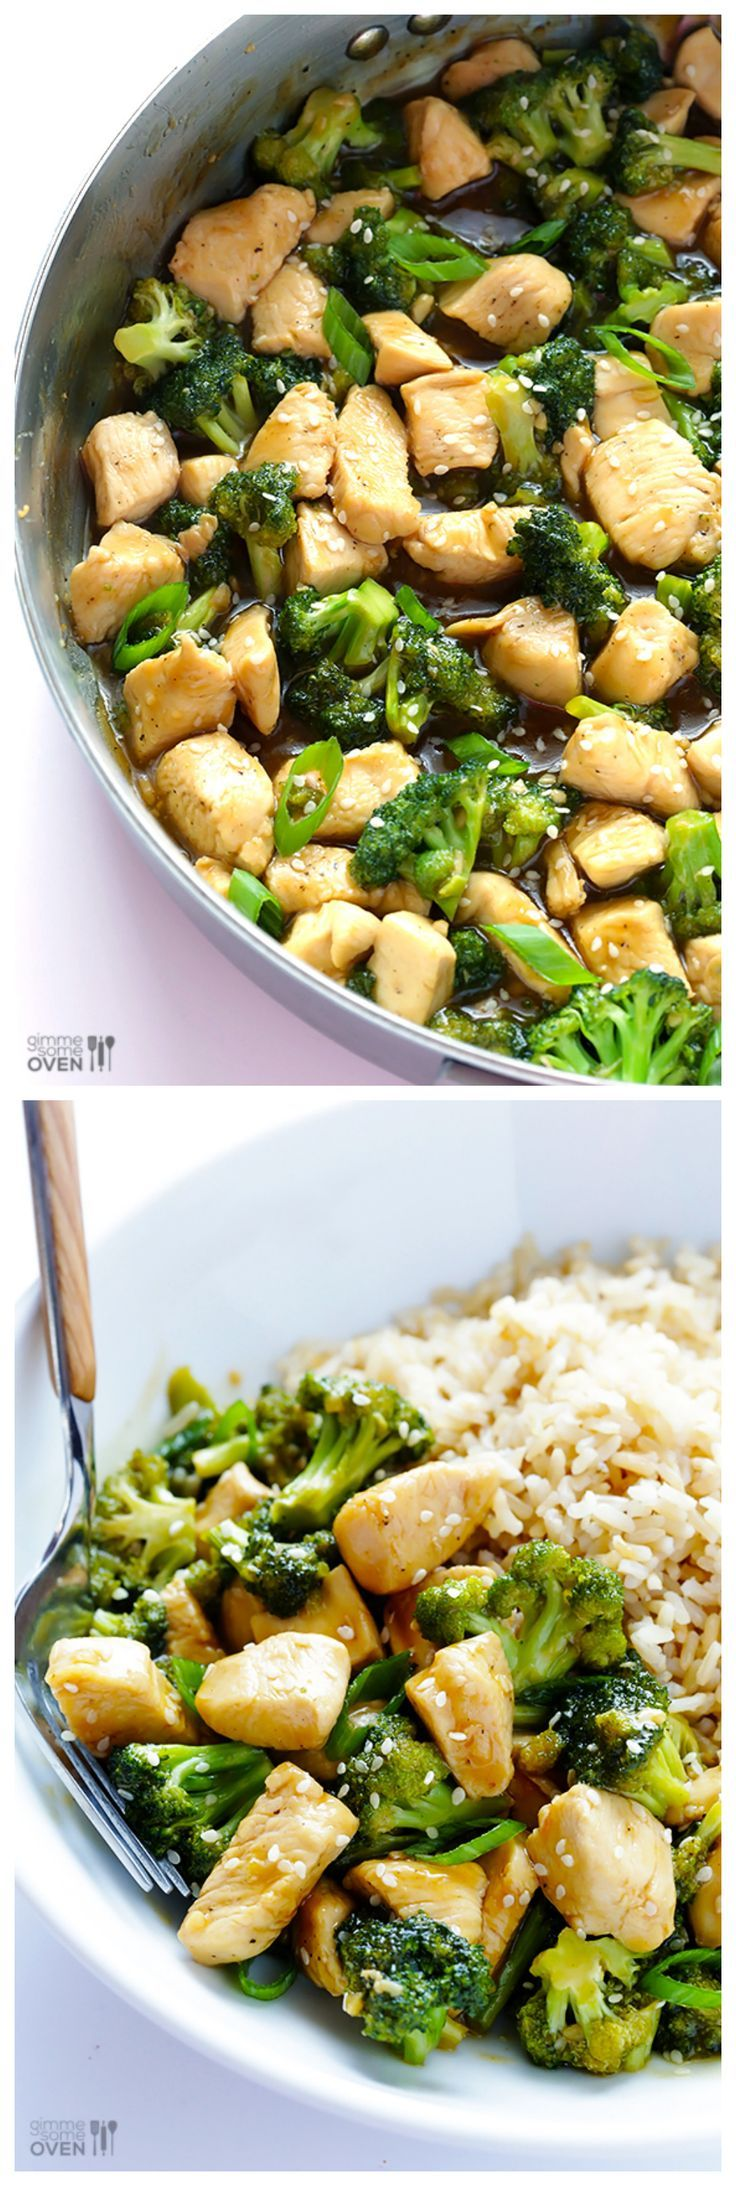 12 Minute Chicken And Broccoli Recipes Food Cooking